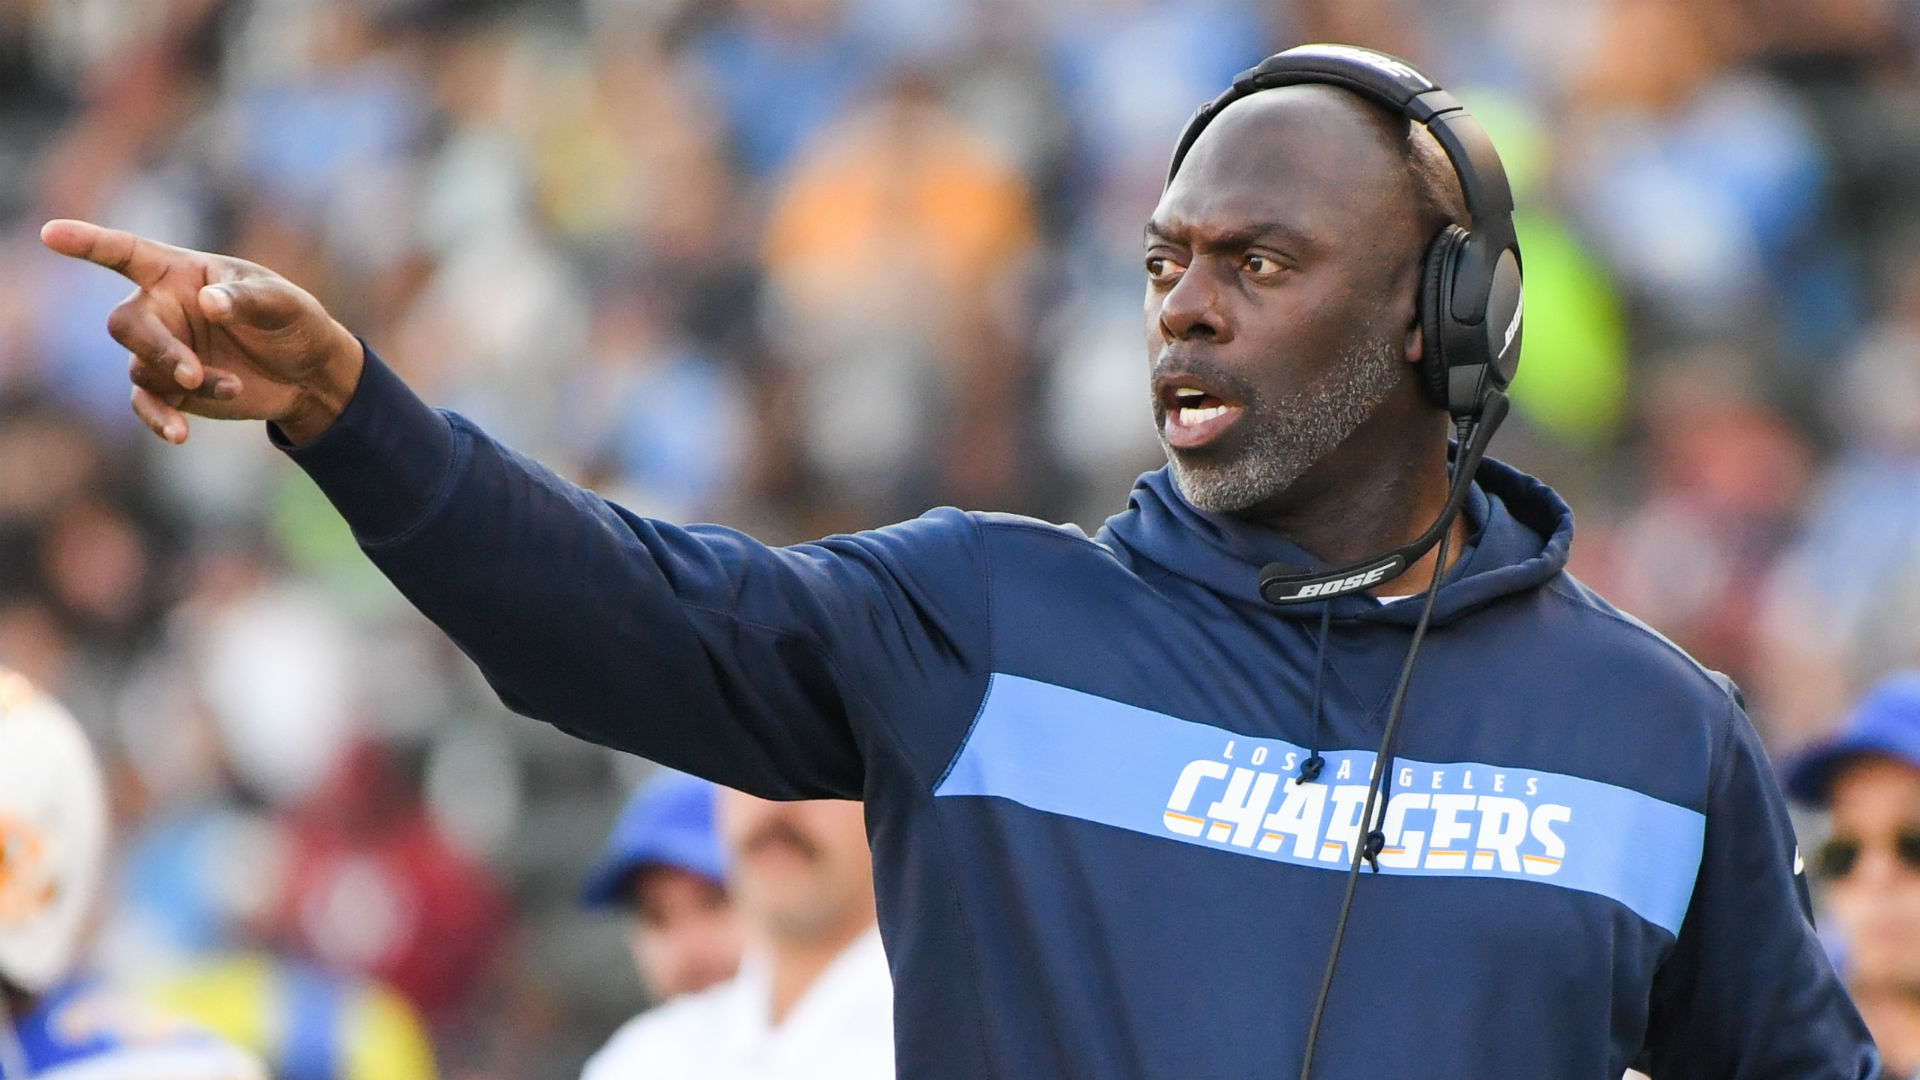 Chargers coach Anthony Lynn has NFL's strongest reaction to ...